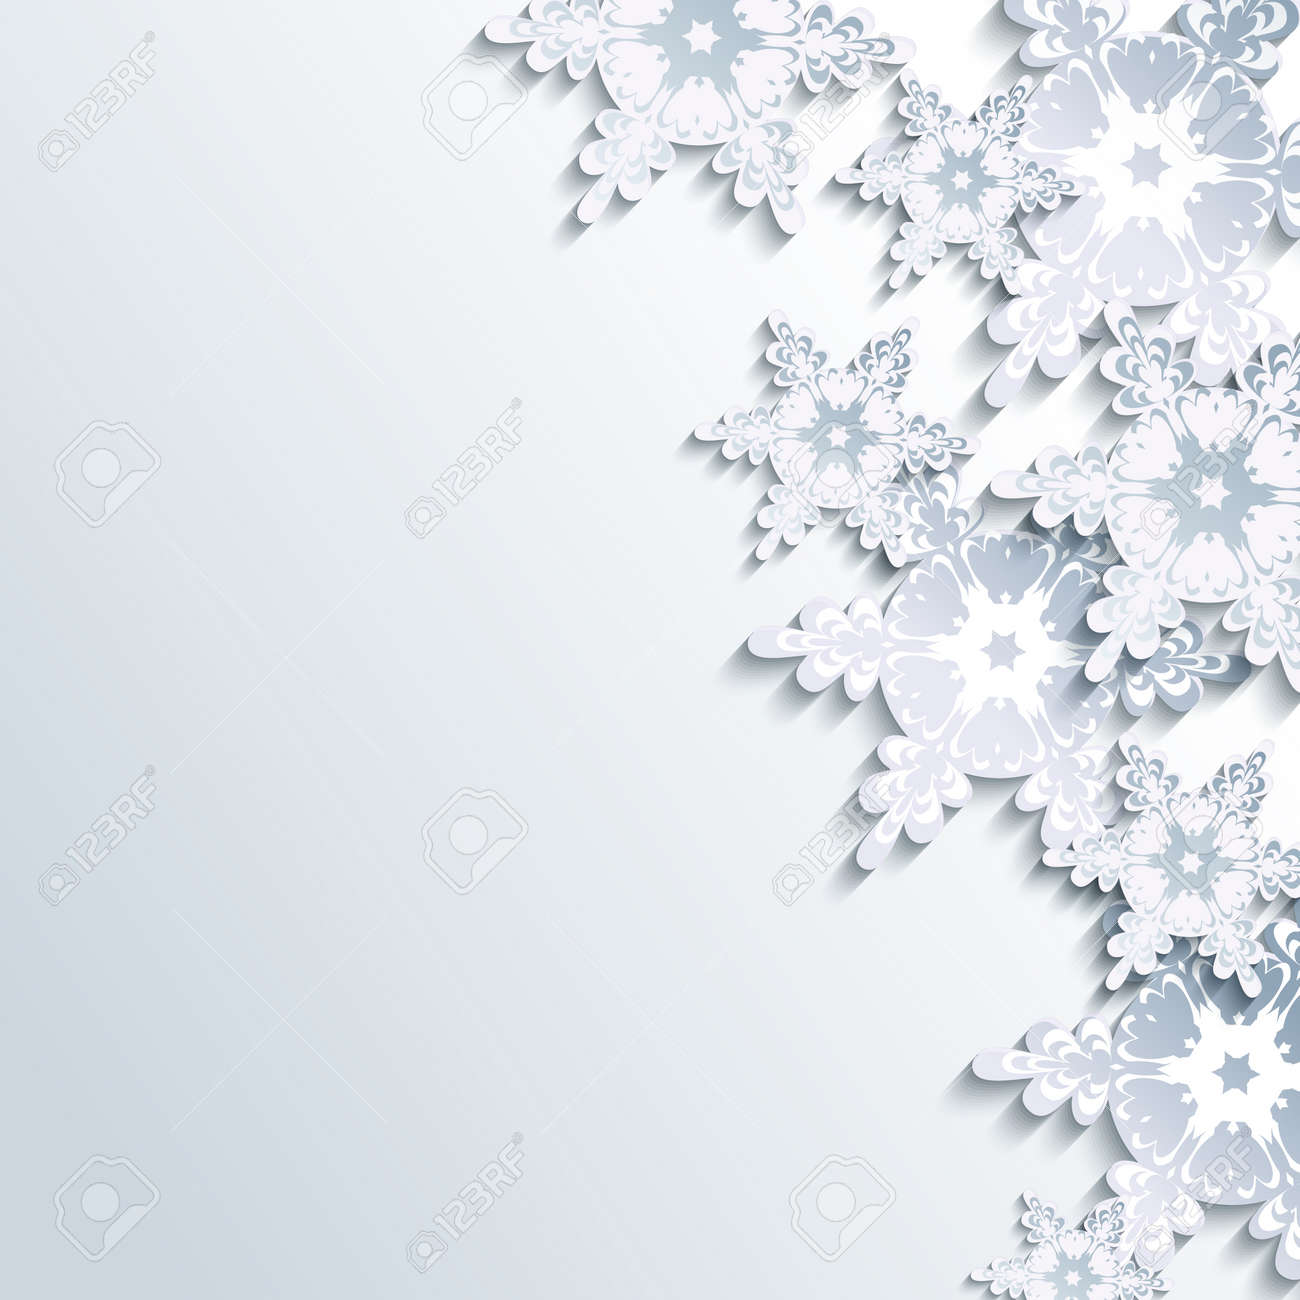 Stylish Creative Gray Background With Abstract 3d Snowflake Trendy Winter Wallpaper White And Grey